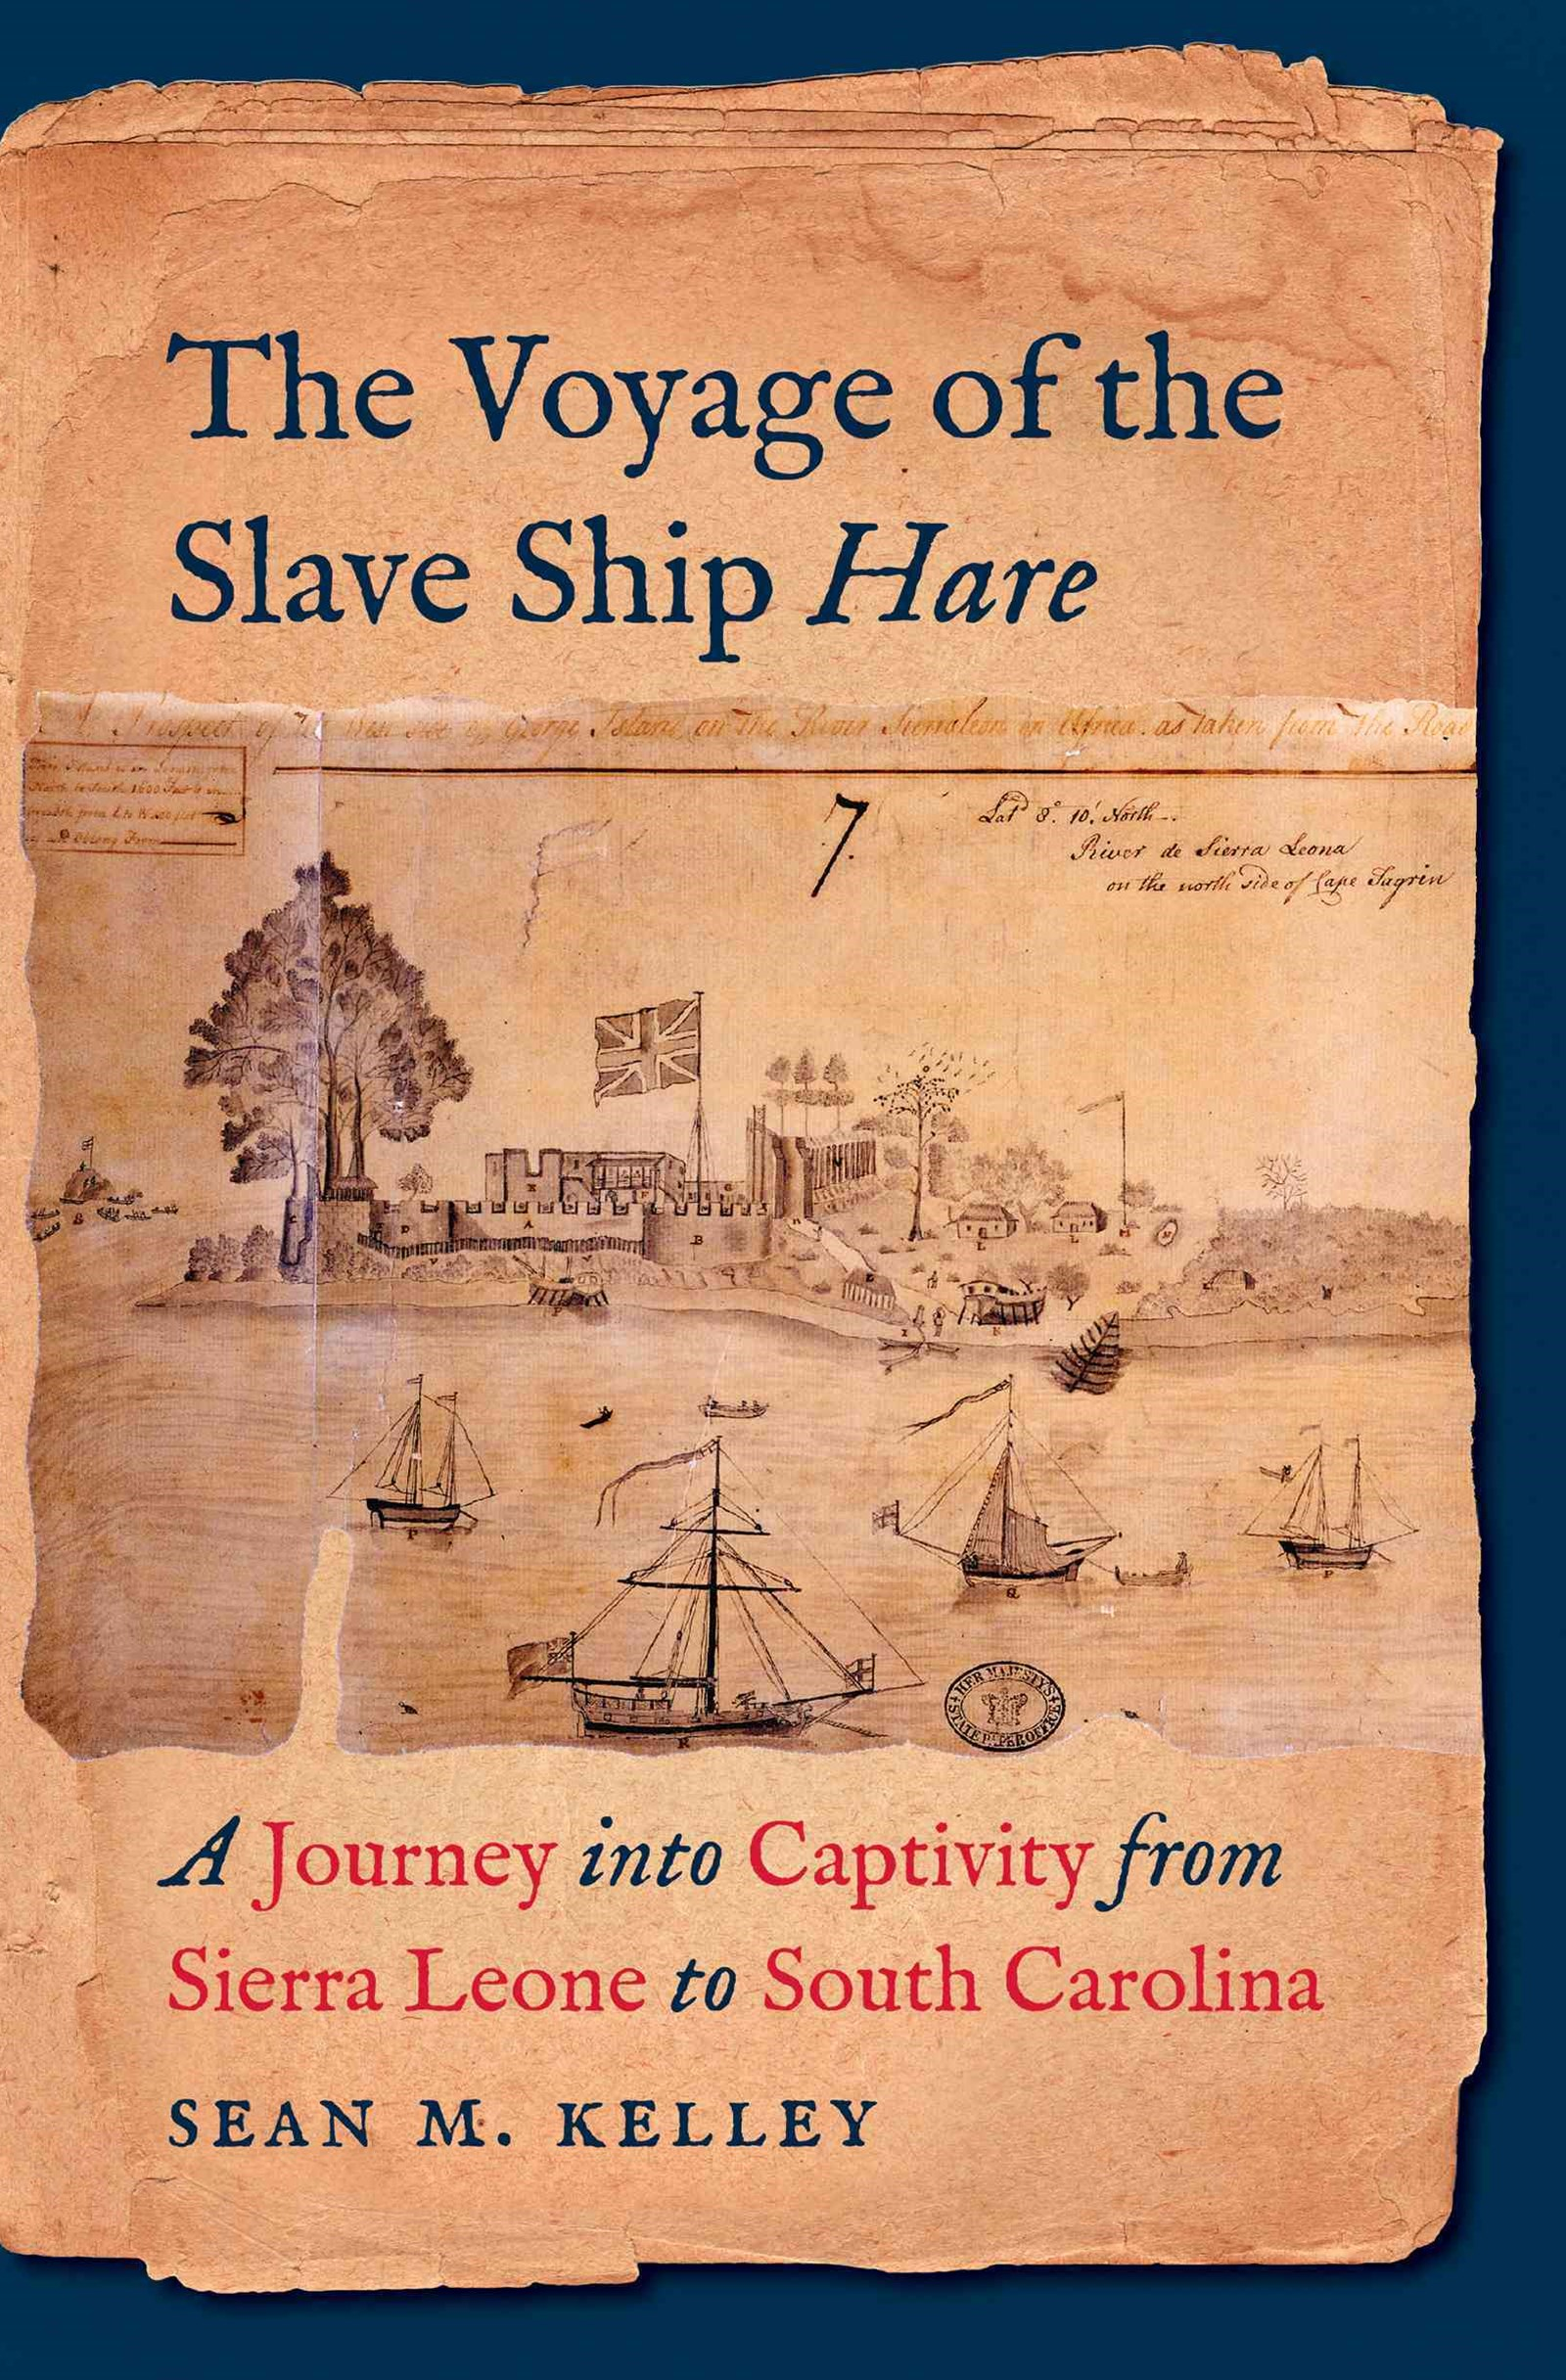 Voyage of the Slave Ship Hare